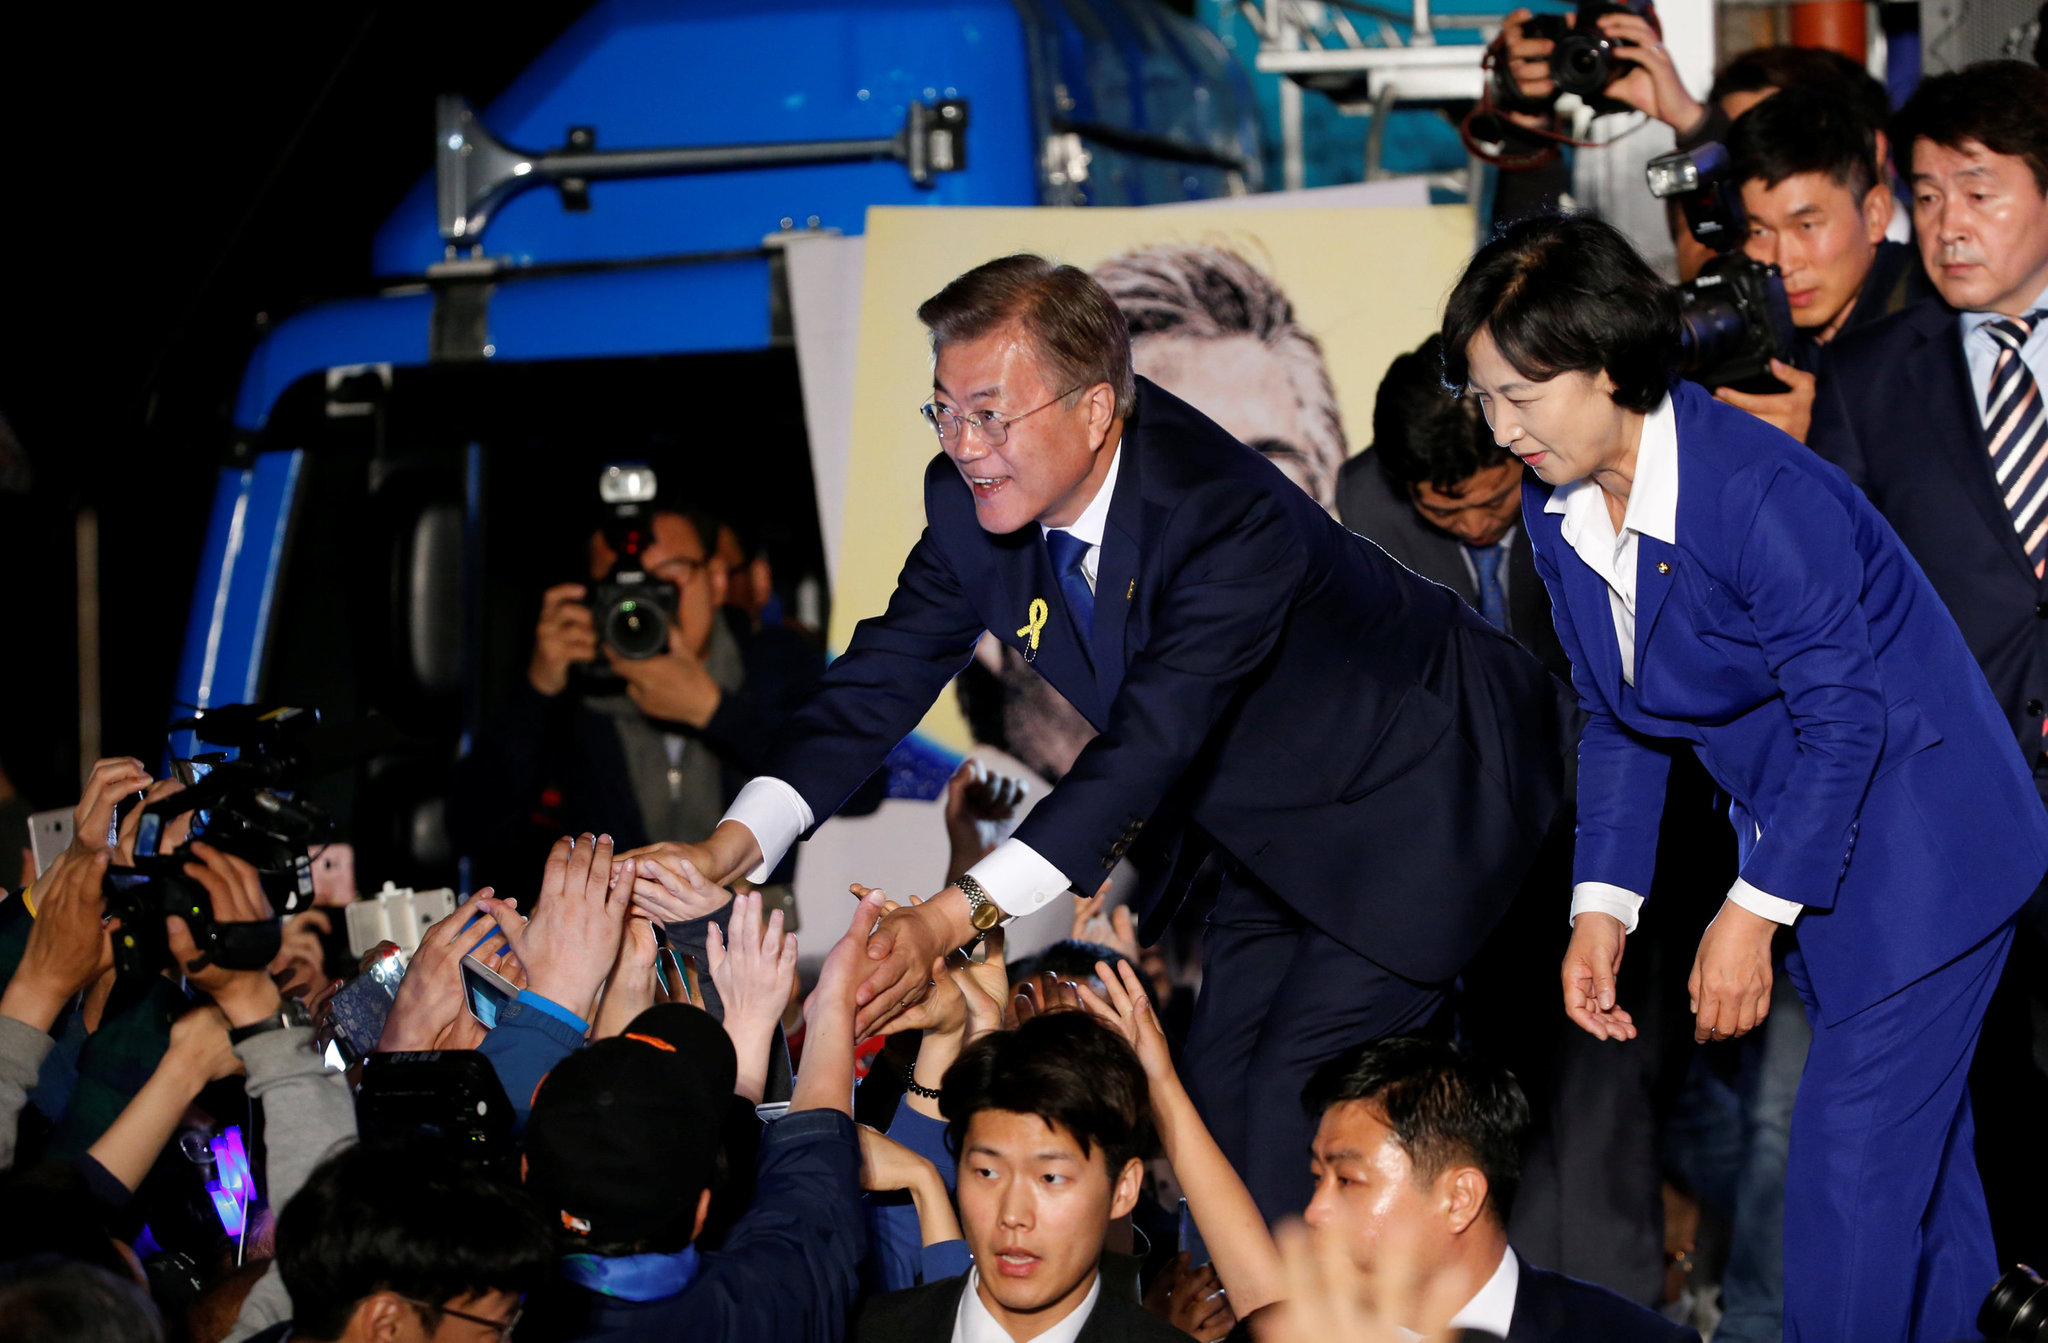 South Korea Elects Moon Jae-in, Who Backs Talks With North, as President